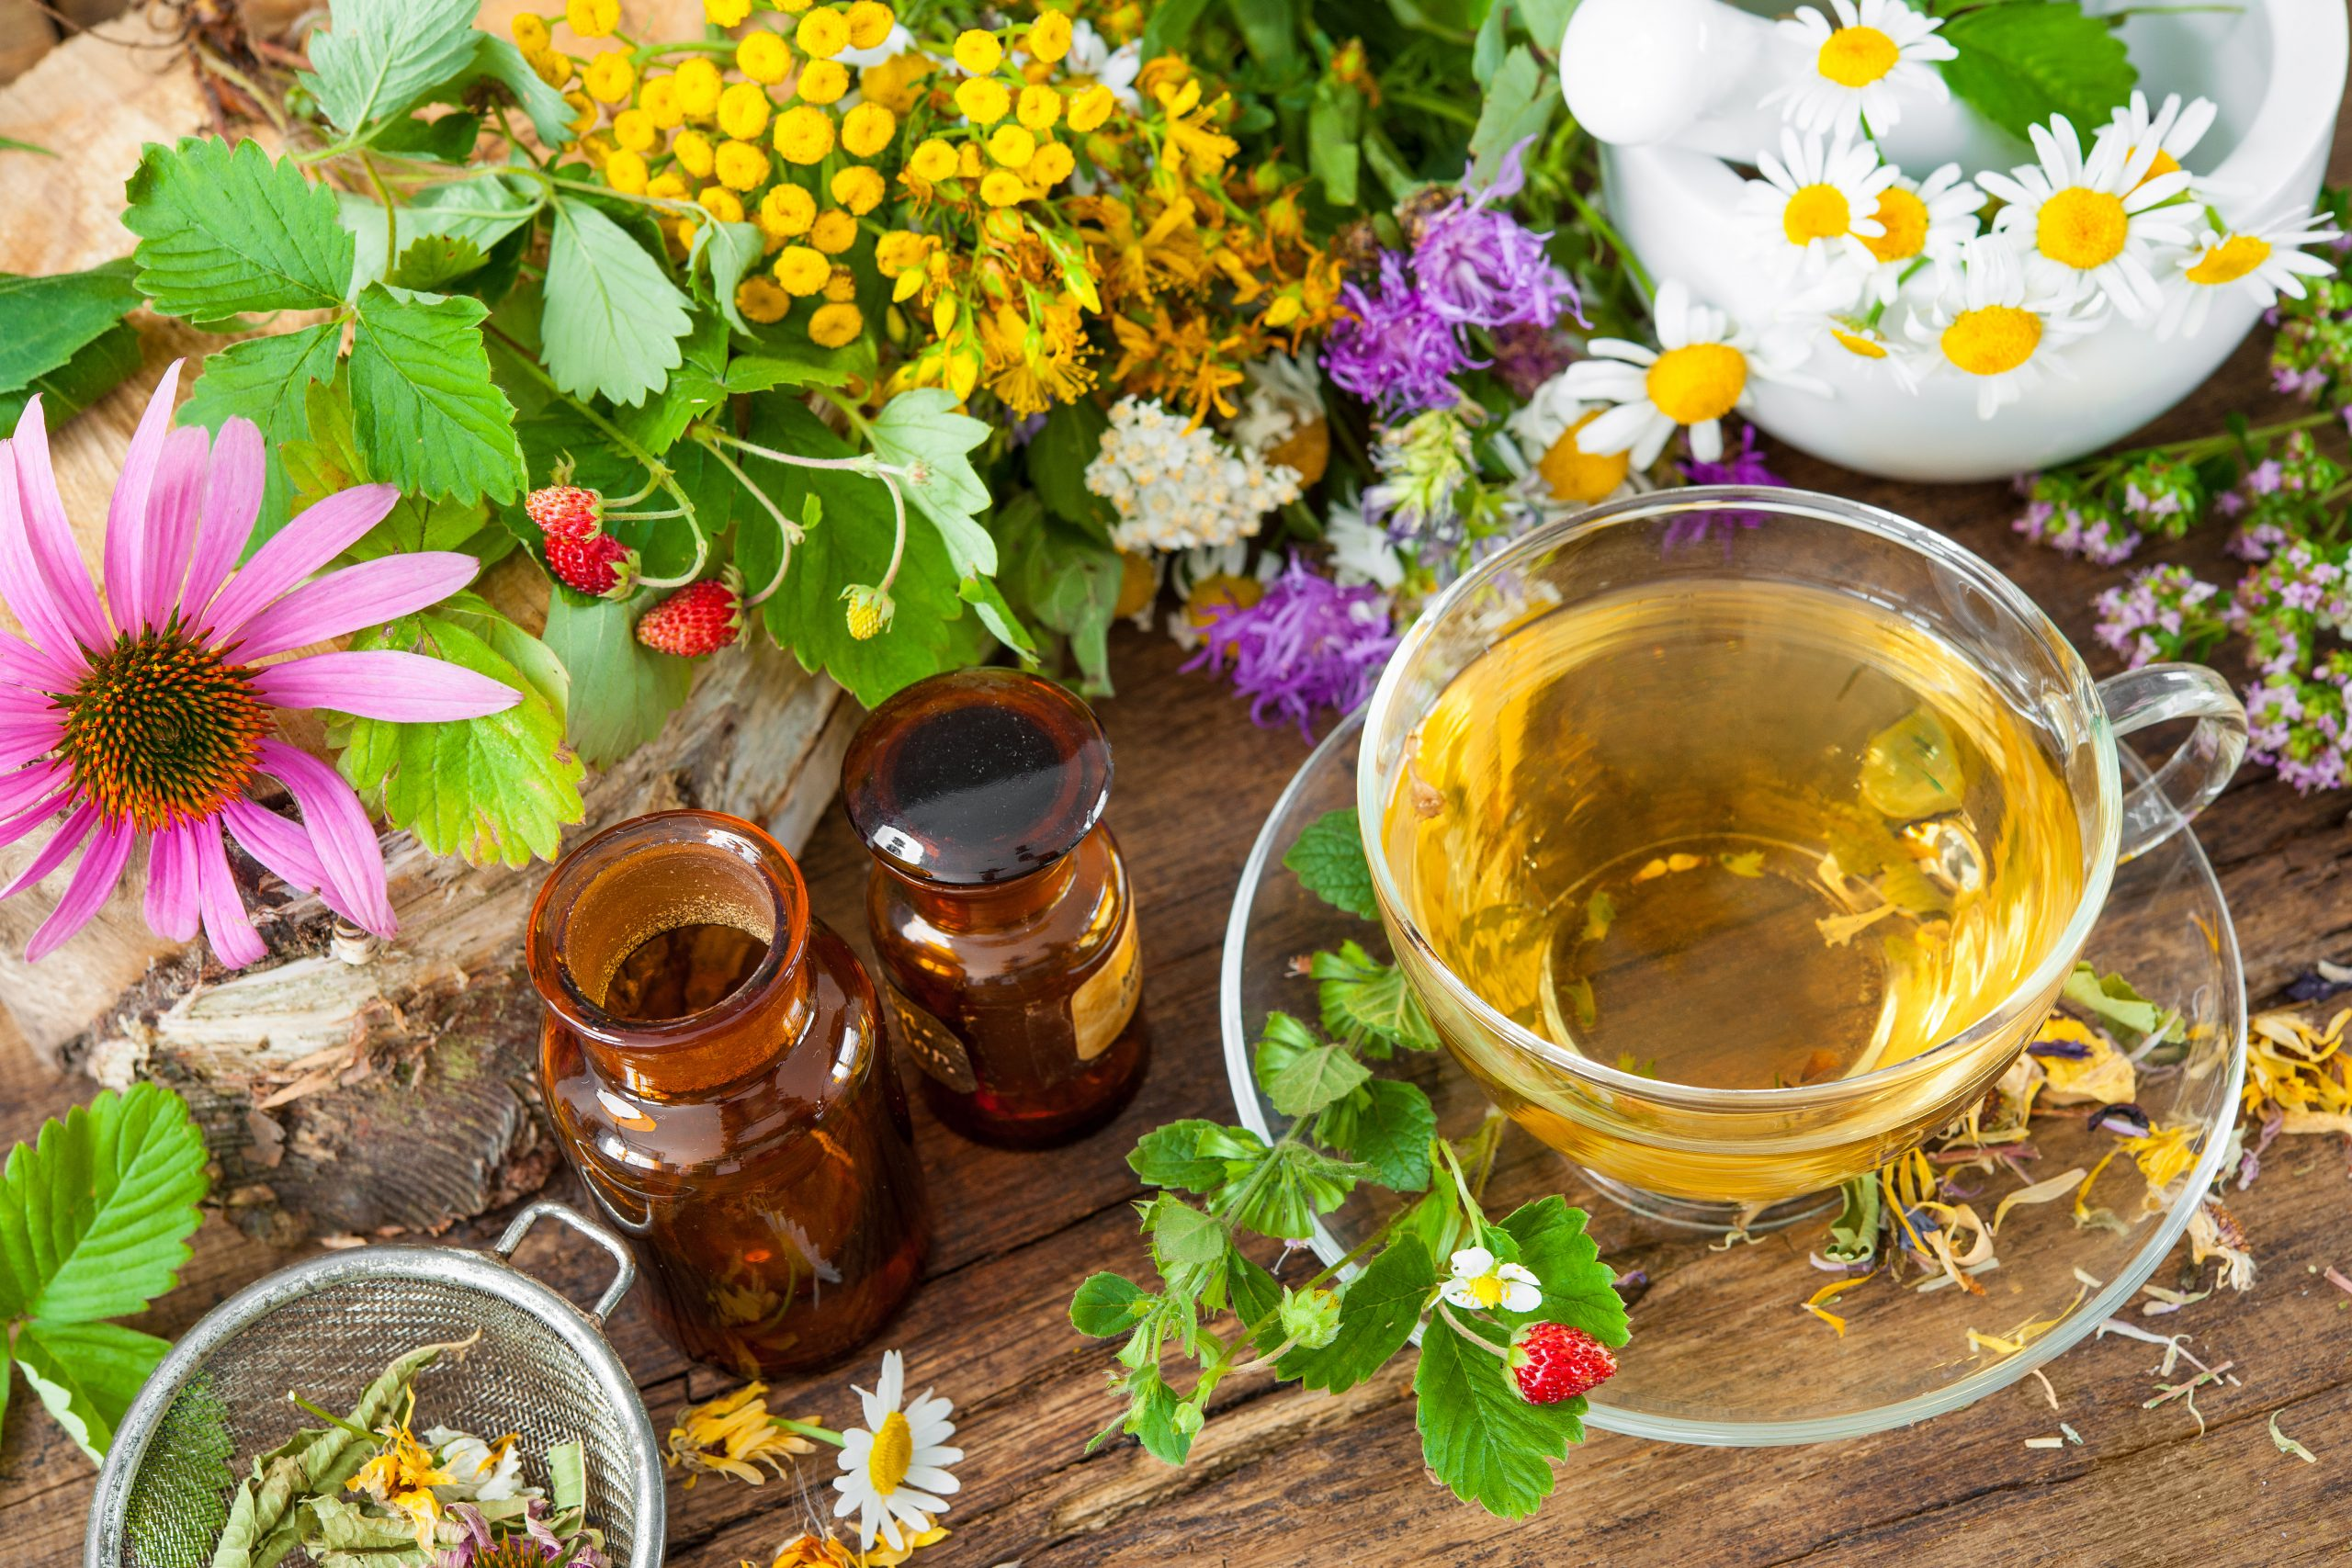 Stellar H&W provides services as a naturopathic doctor